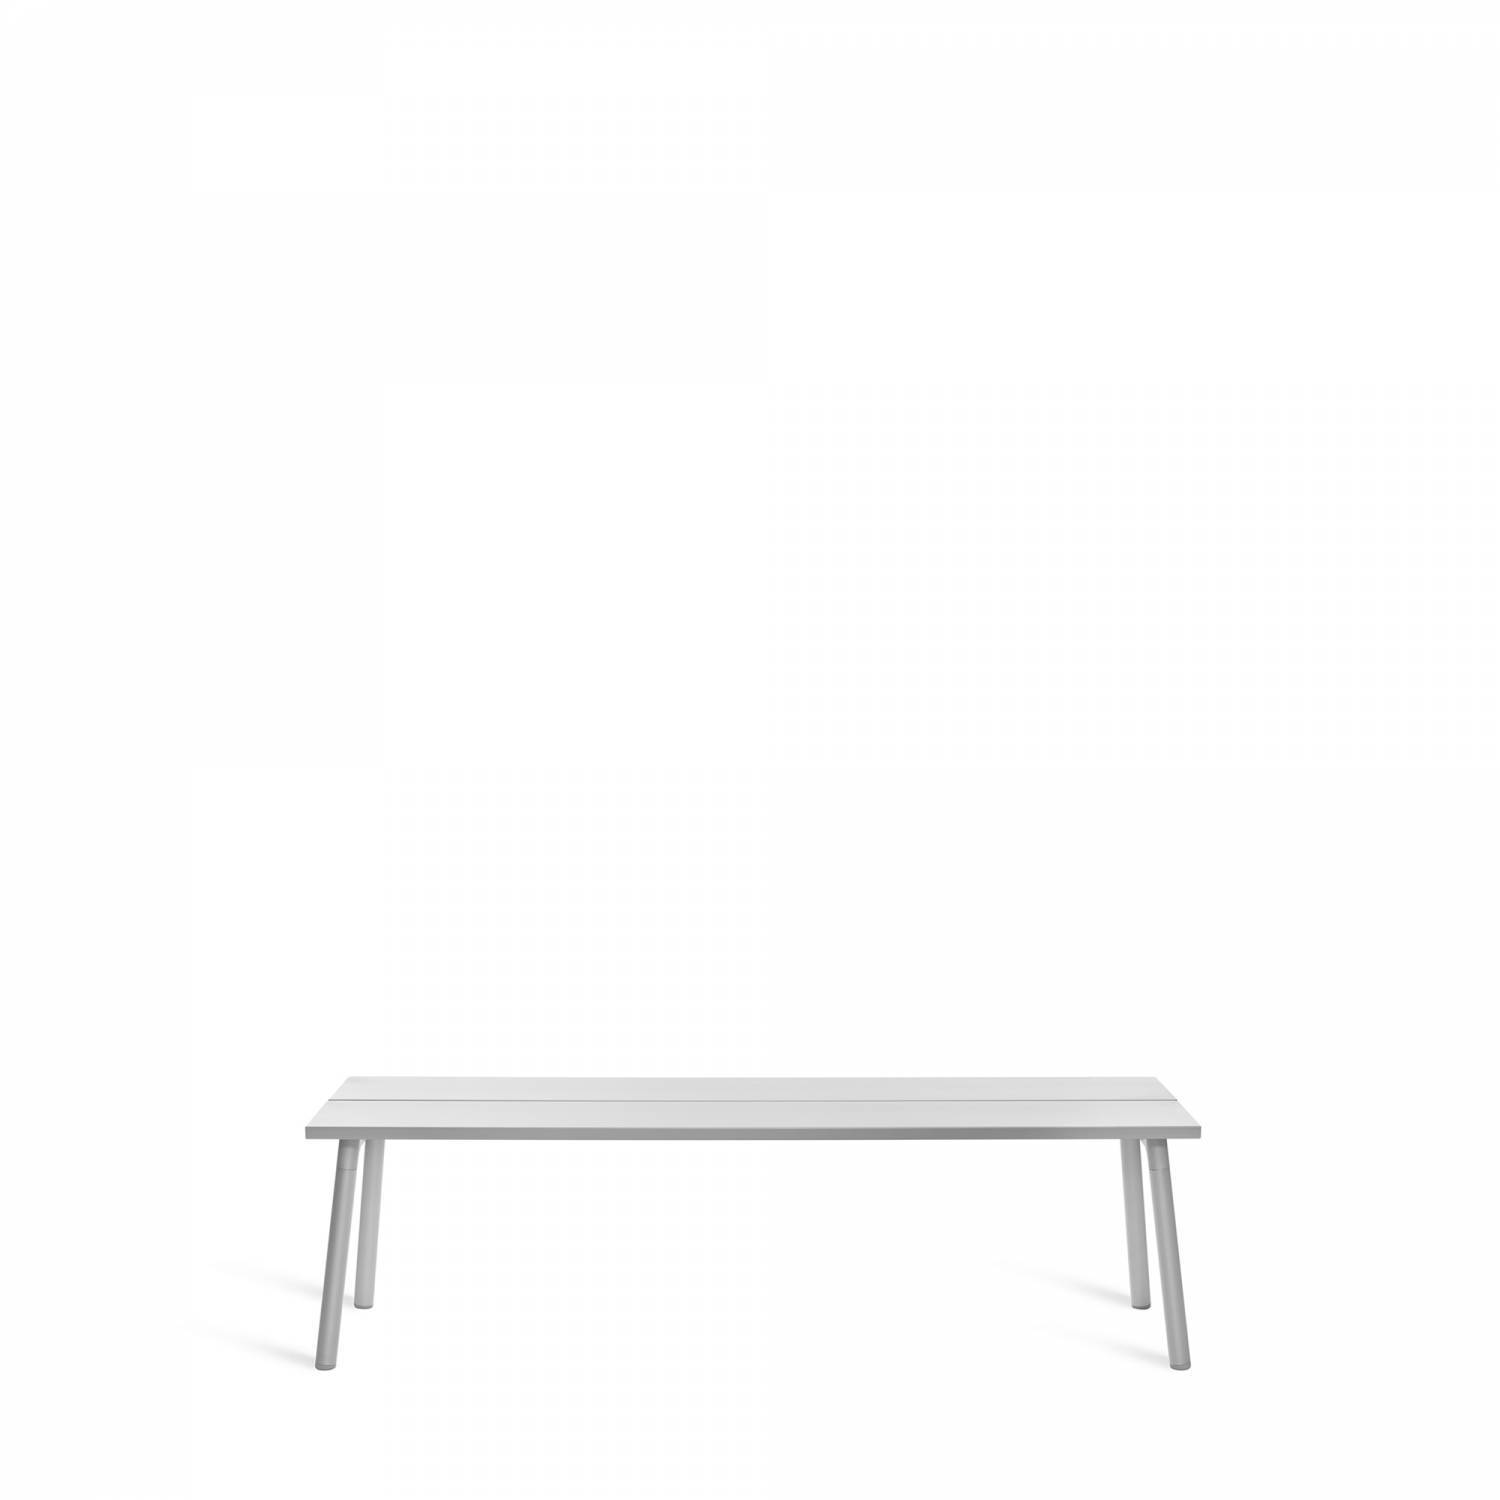 Emeco Run Bench- Clear Aluminum Emeco 3-Seat Bench